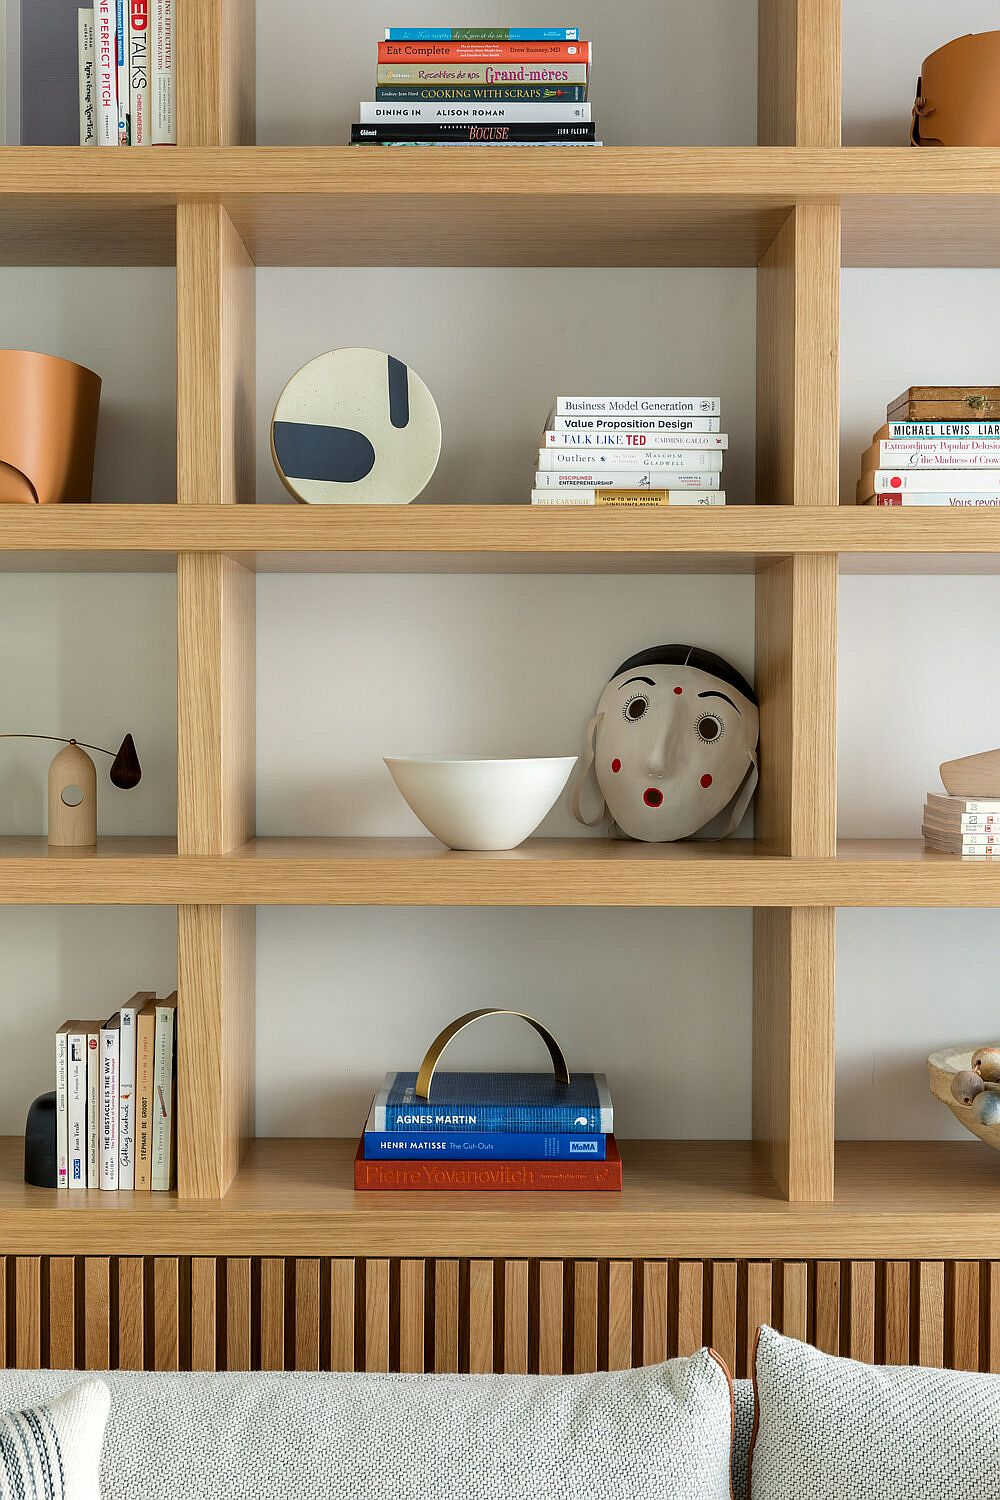 Decorate-that-open-wooden-bookshelf-in-a-smart-and-modern-fashion-37400